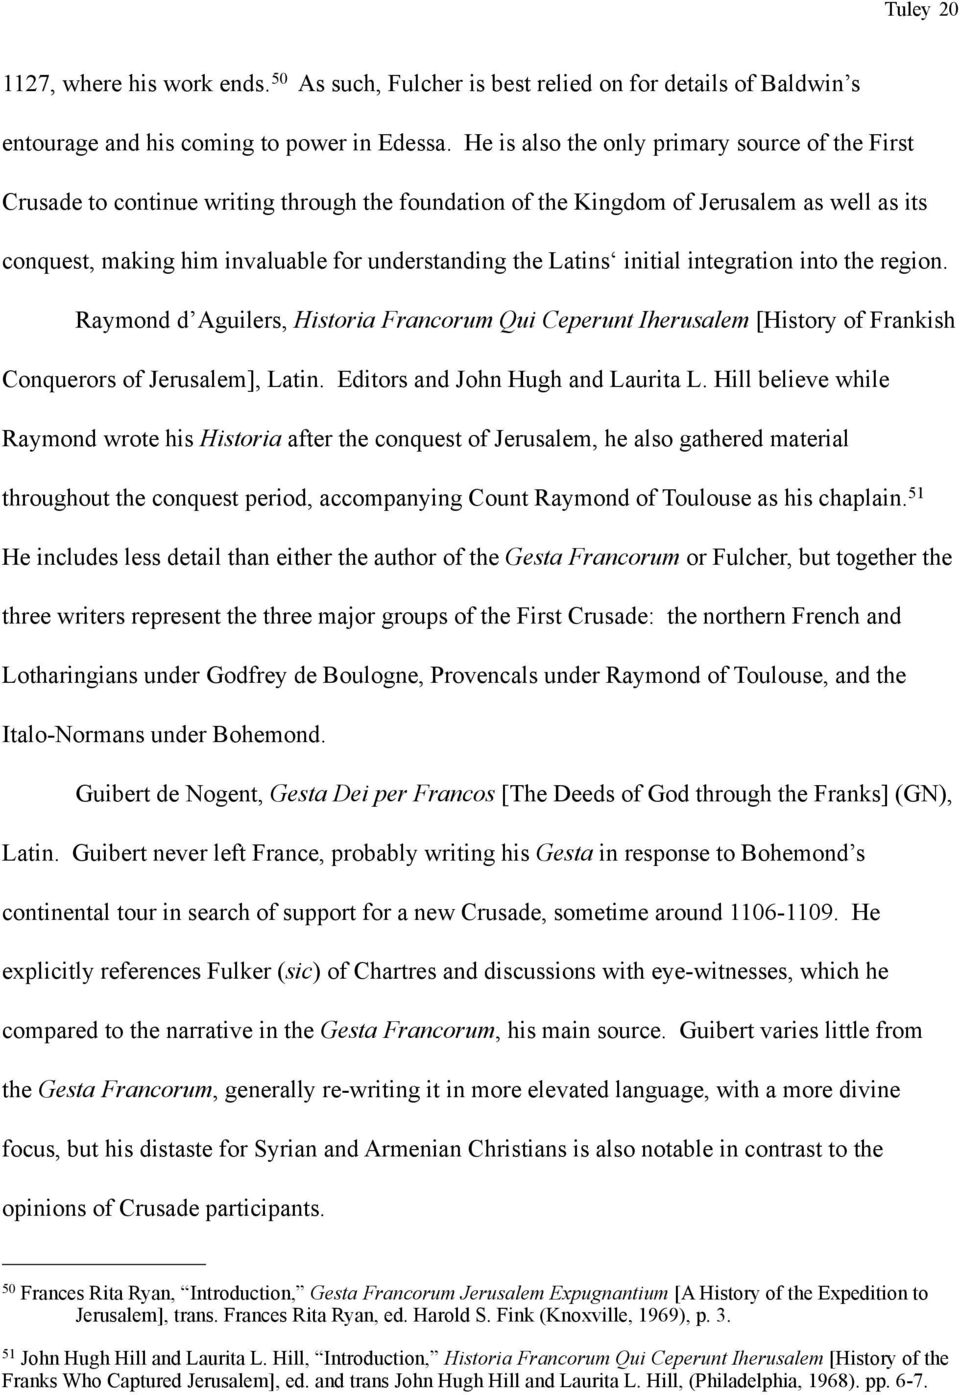 Latins initial integration into the region. Raymond d Aguilers, Historia Francorum Qui Ceperunt Iherusalem [History of Frankish Conquerors of Jerusalem], Latin. Editors and John Hugh and Laurita L.